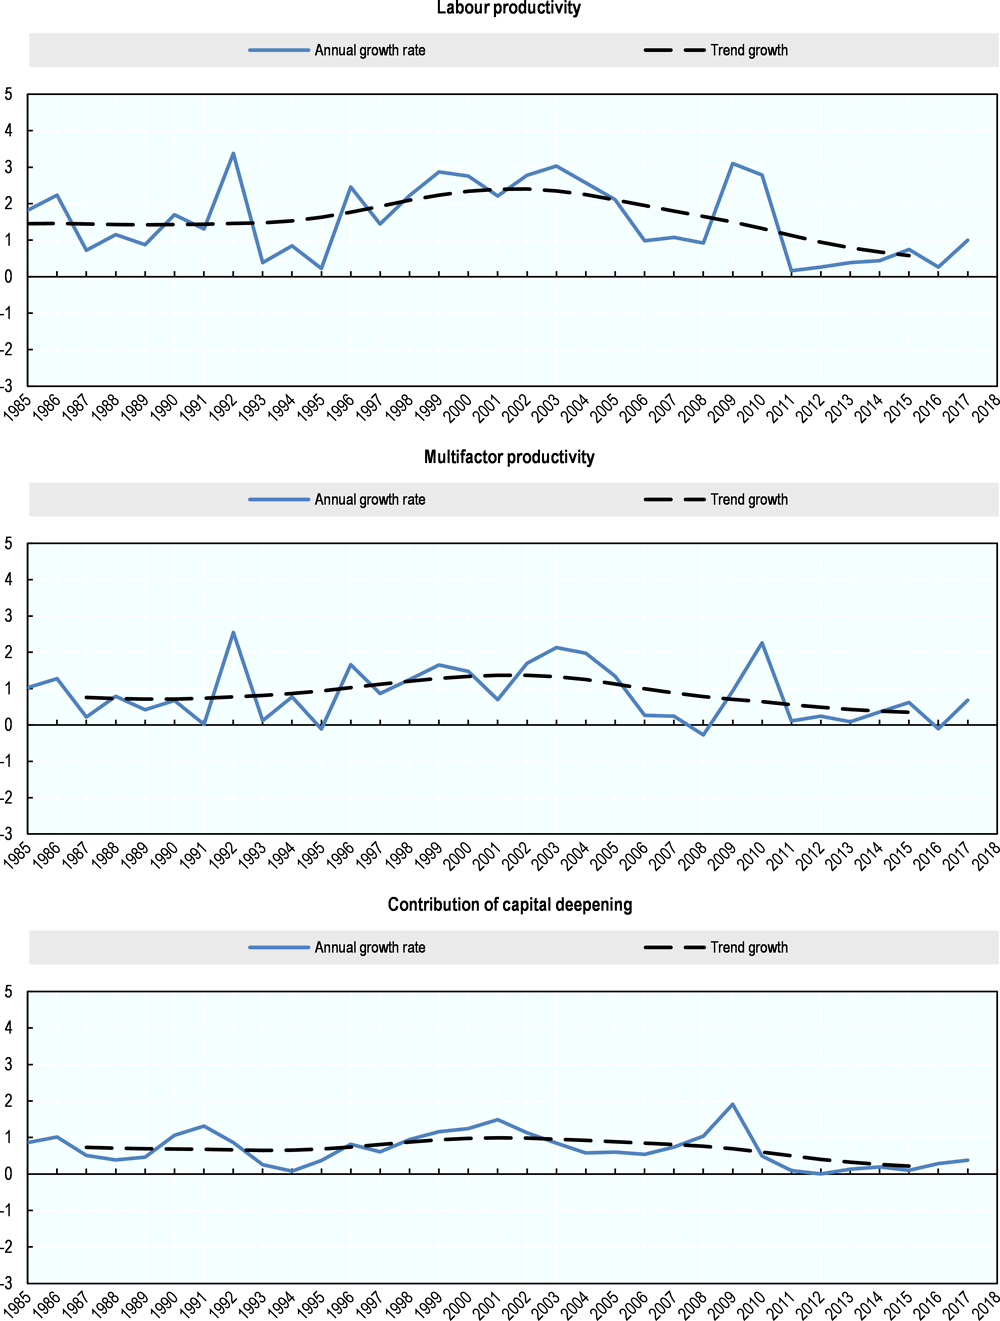 Figure 7.8. Labour productivity growth trend and its components, United States